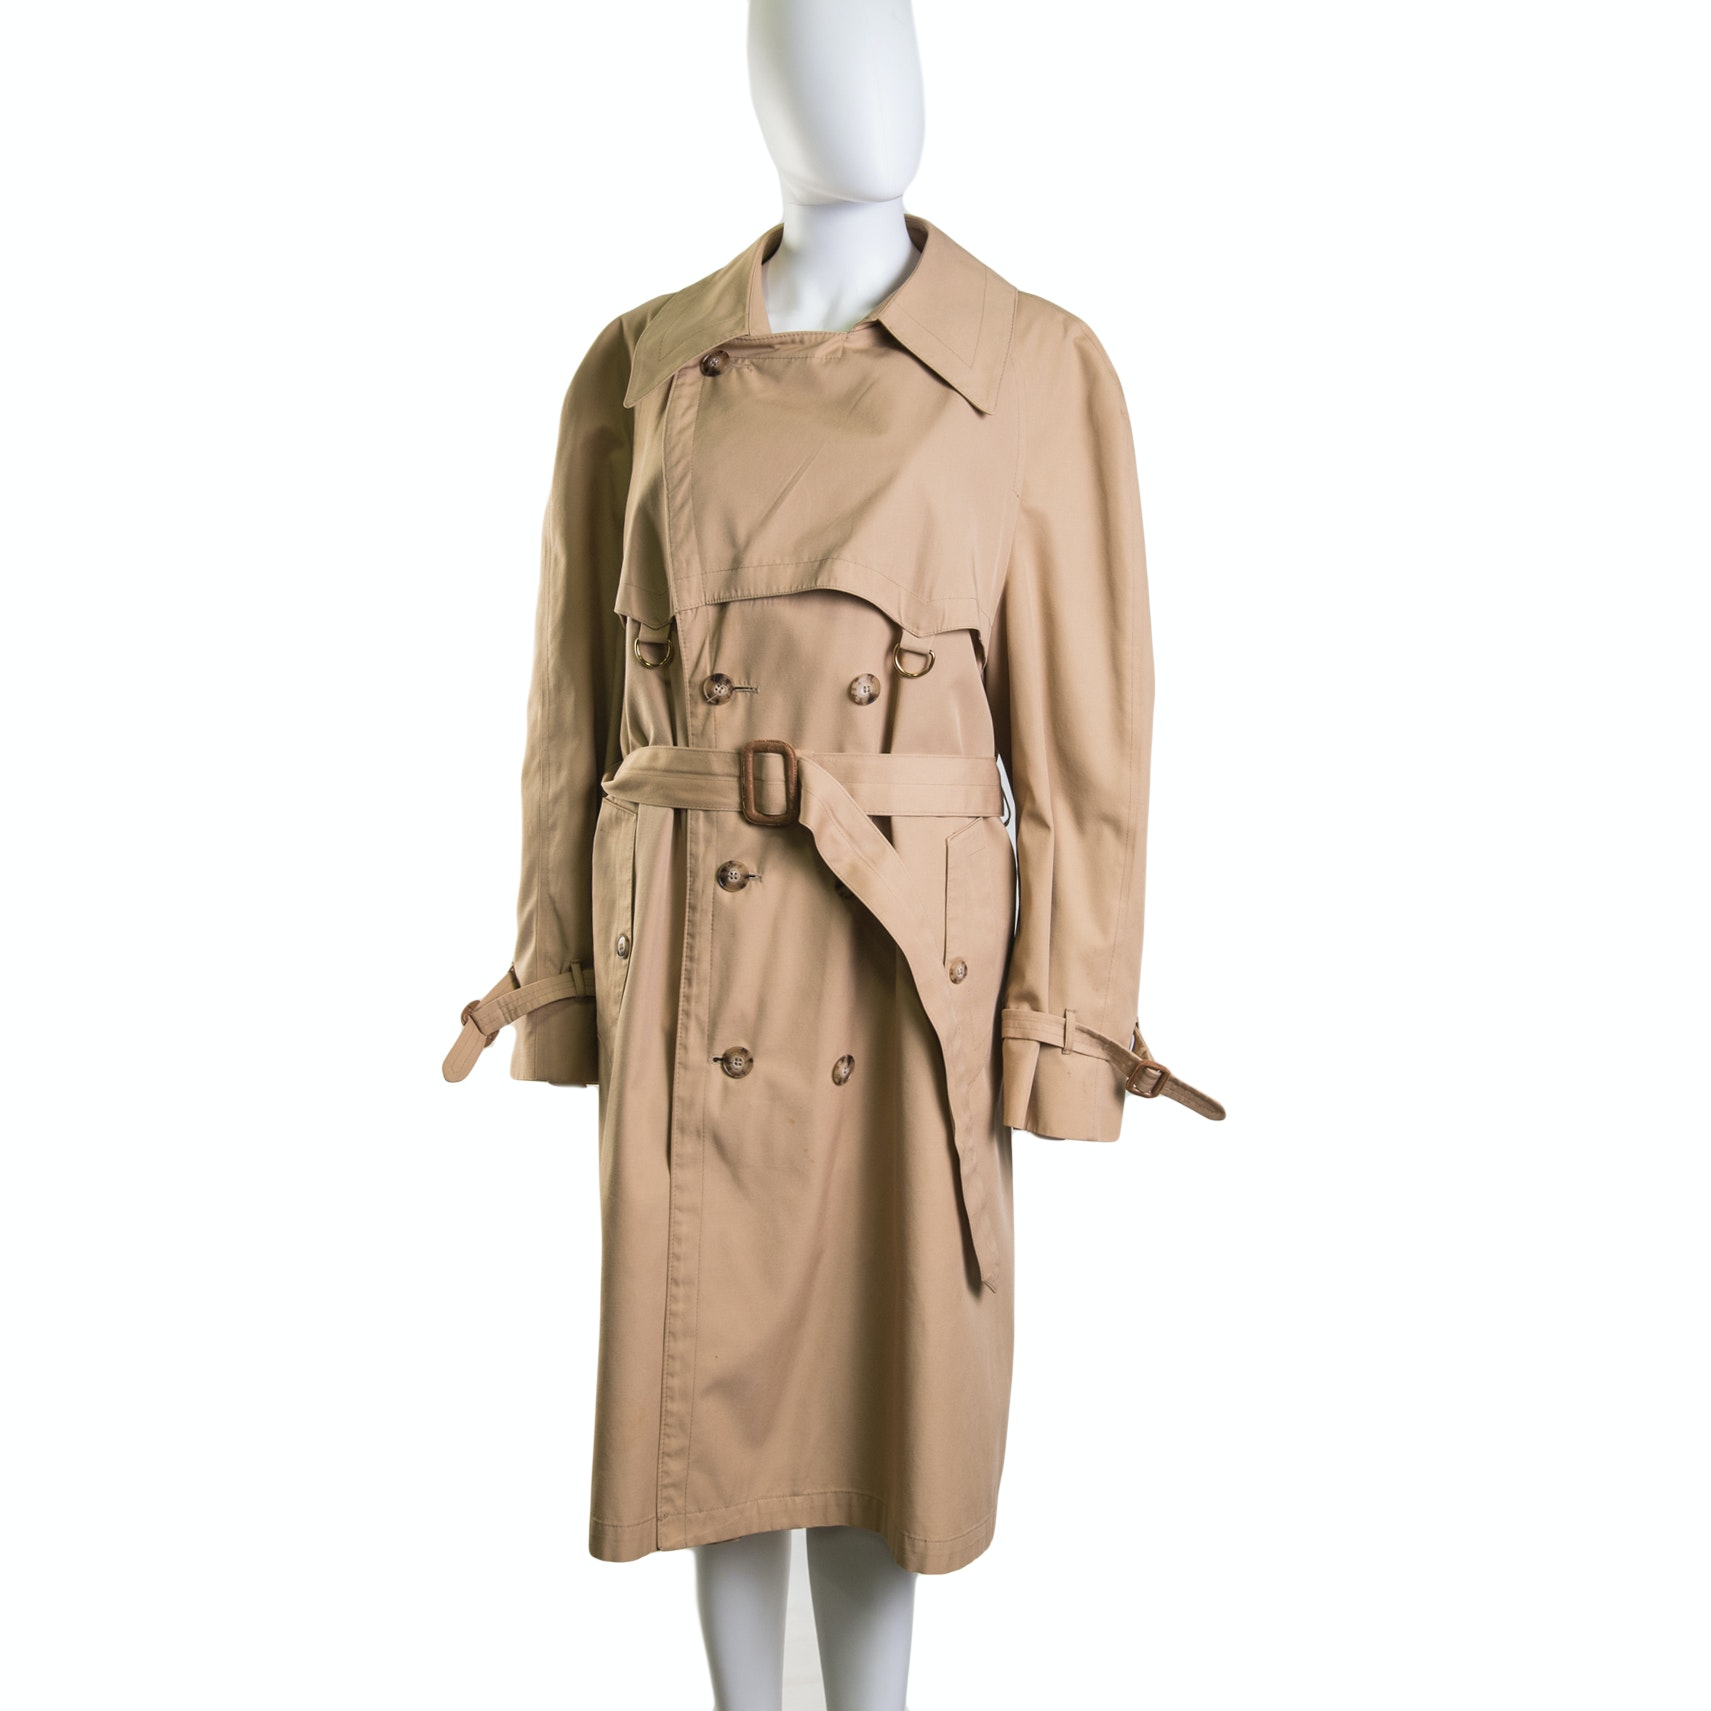 Men's Christian Dior of Paris Double-Breasted Trench Coat